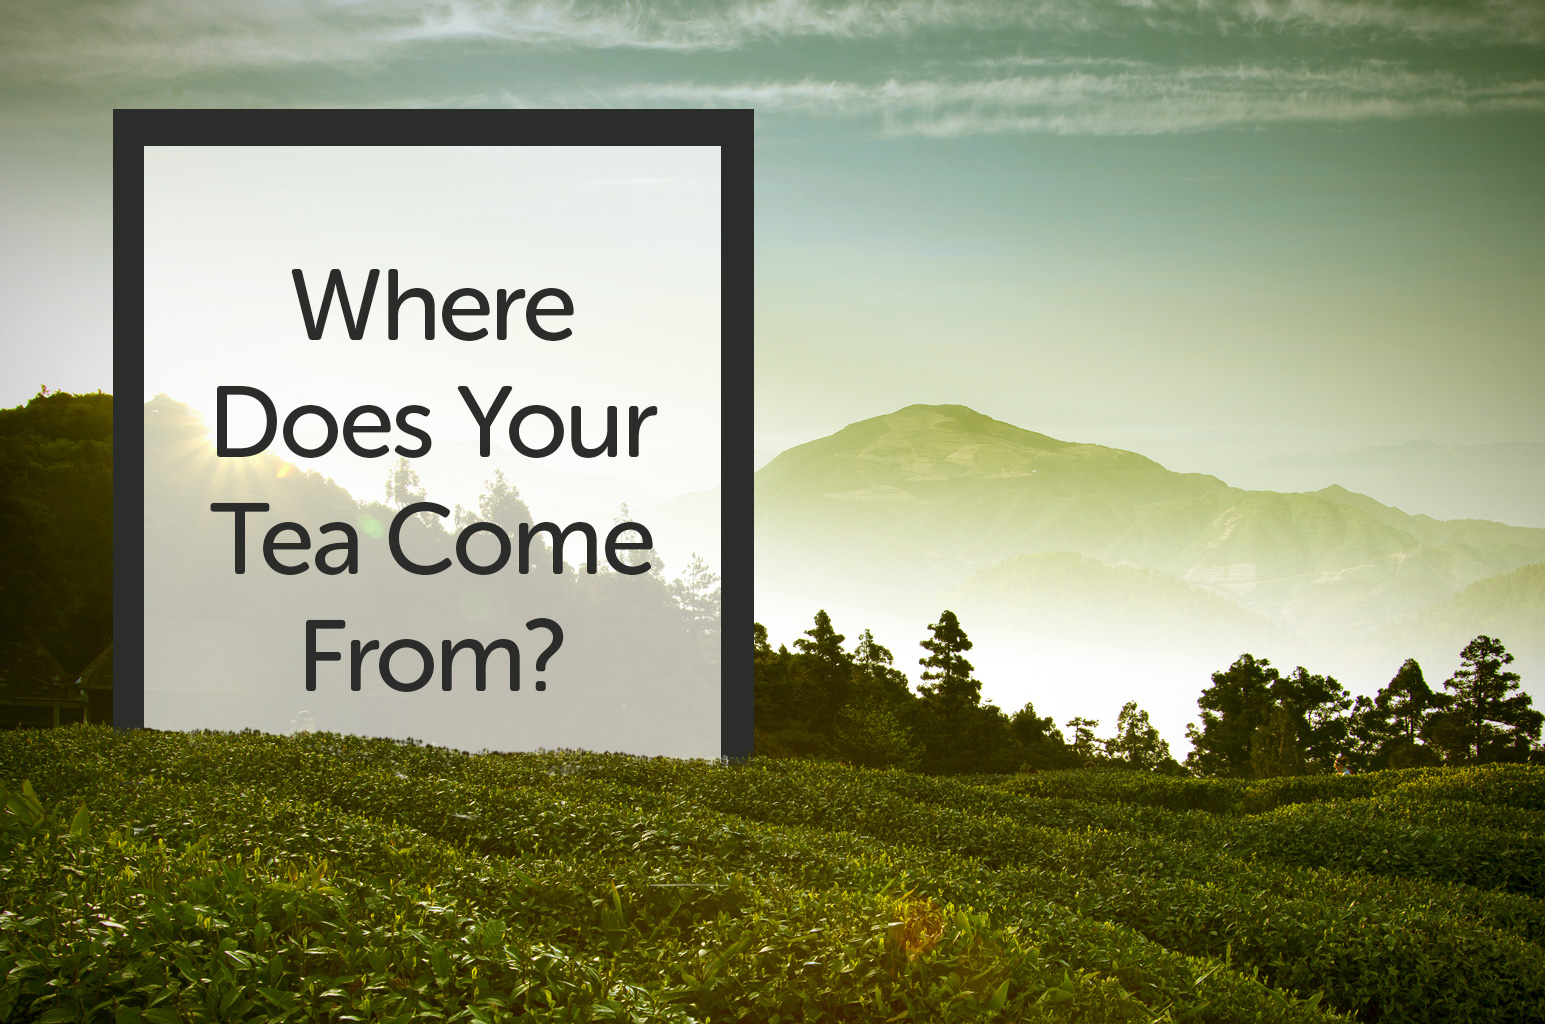 Where Does Your Tea Come From?